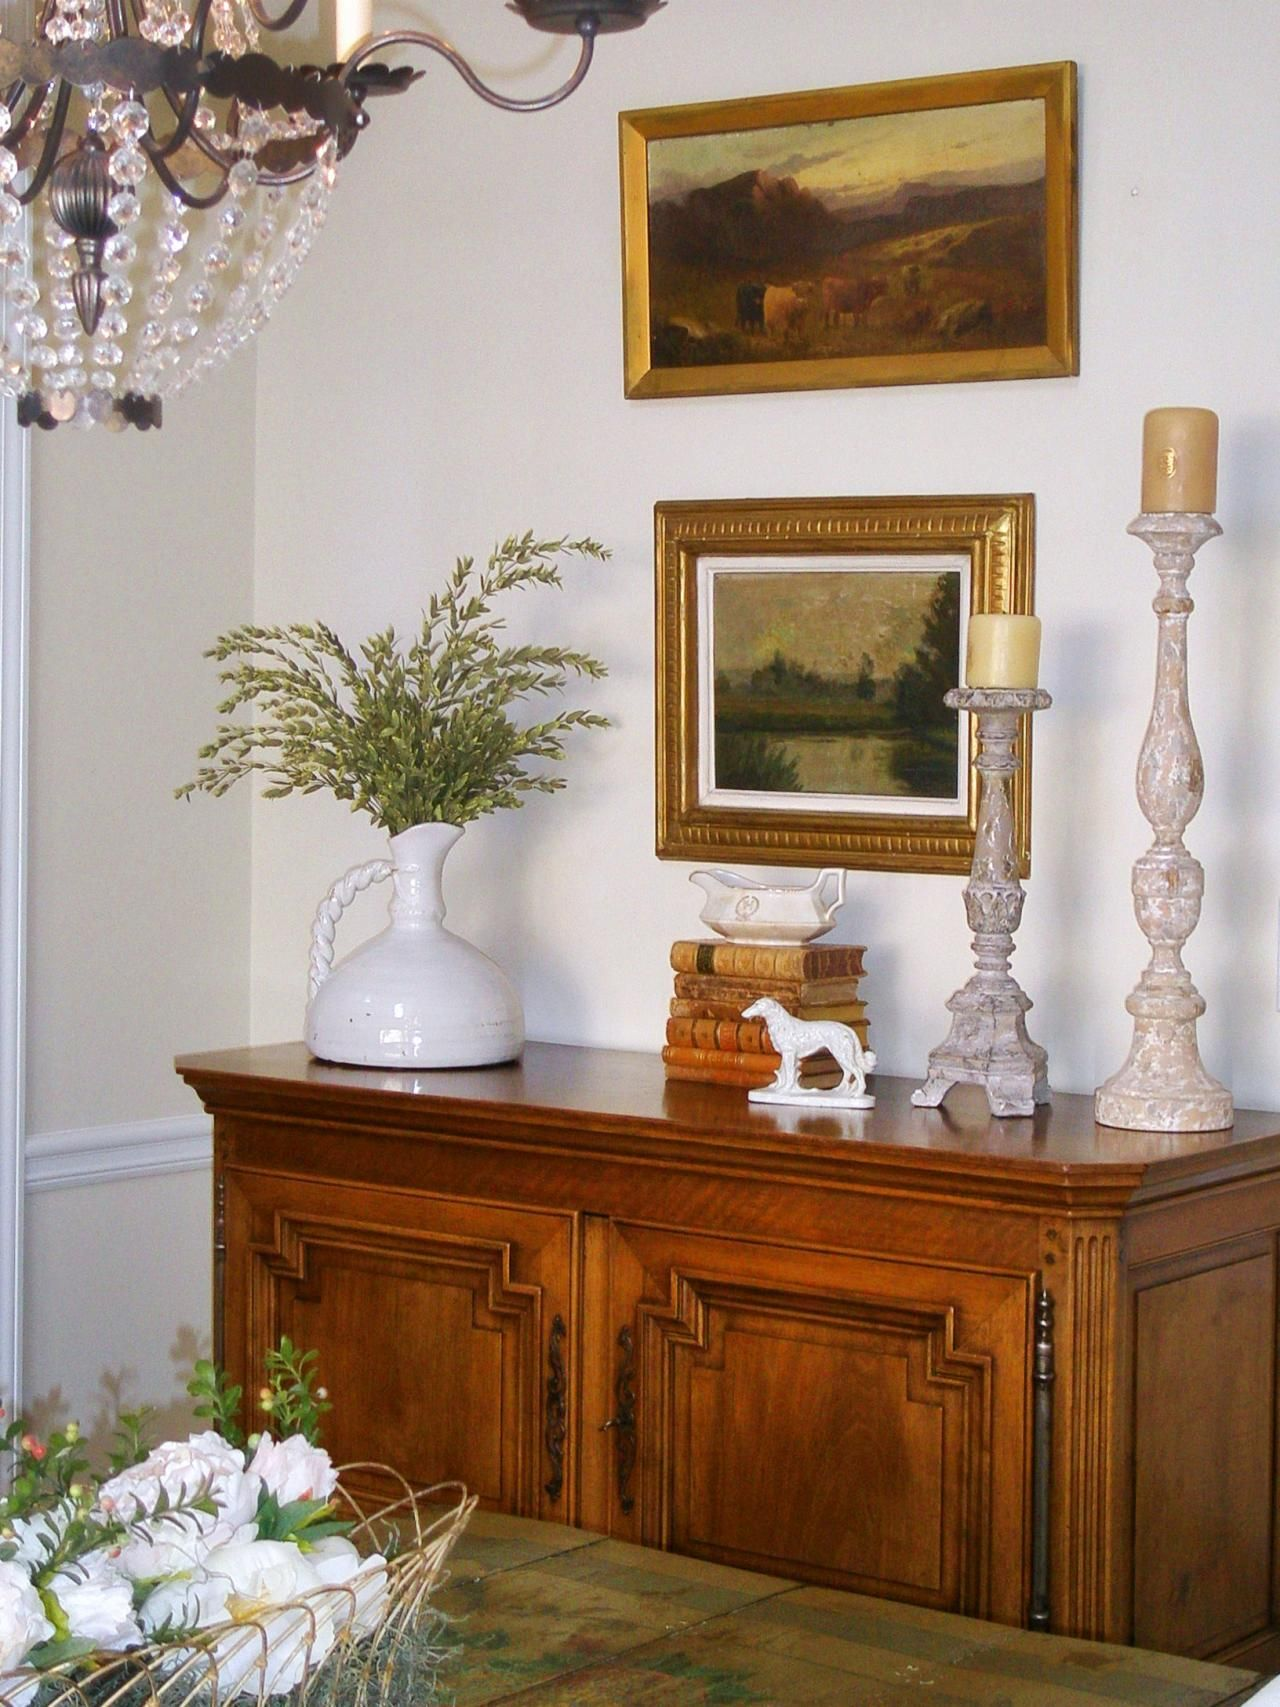 French Inspired Design From HGTV | Interior Design Styles And Color Schemes  For Home Decorating | HGTV